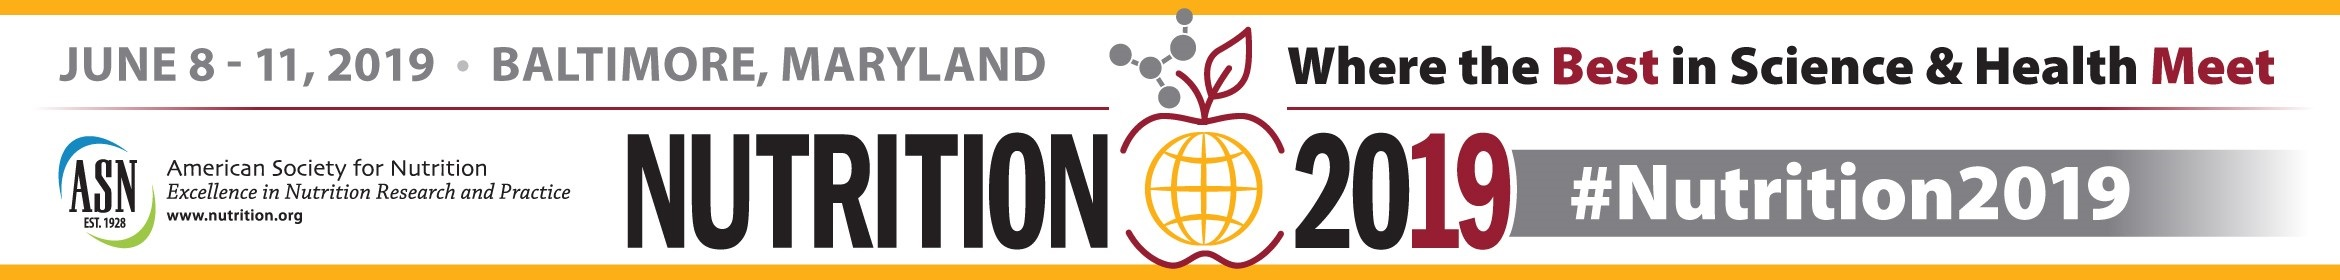 Nutrition 2019 Main banner